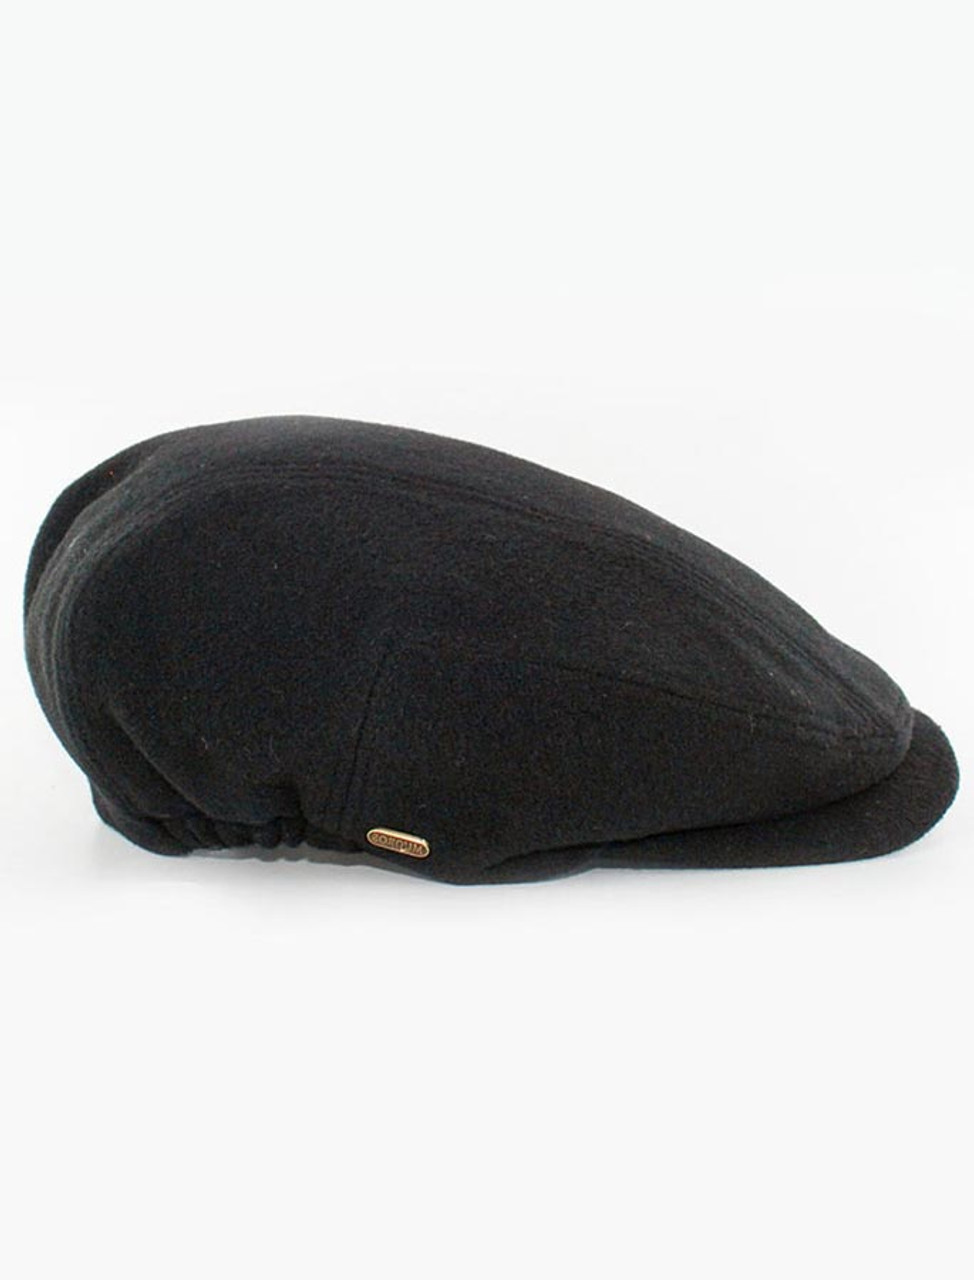 493012b8f84 Kerry Tweed Flat Cap - Black